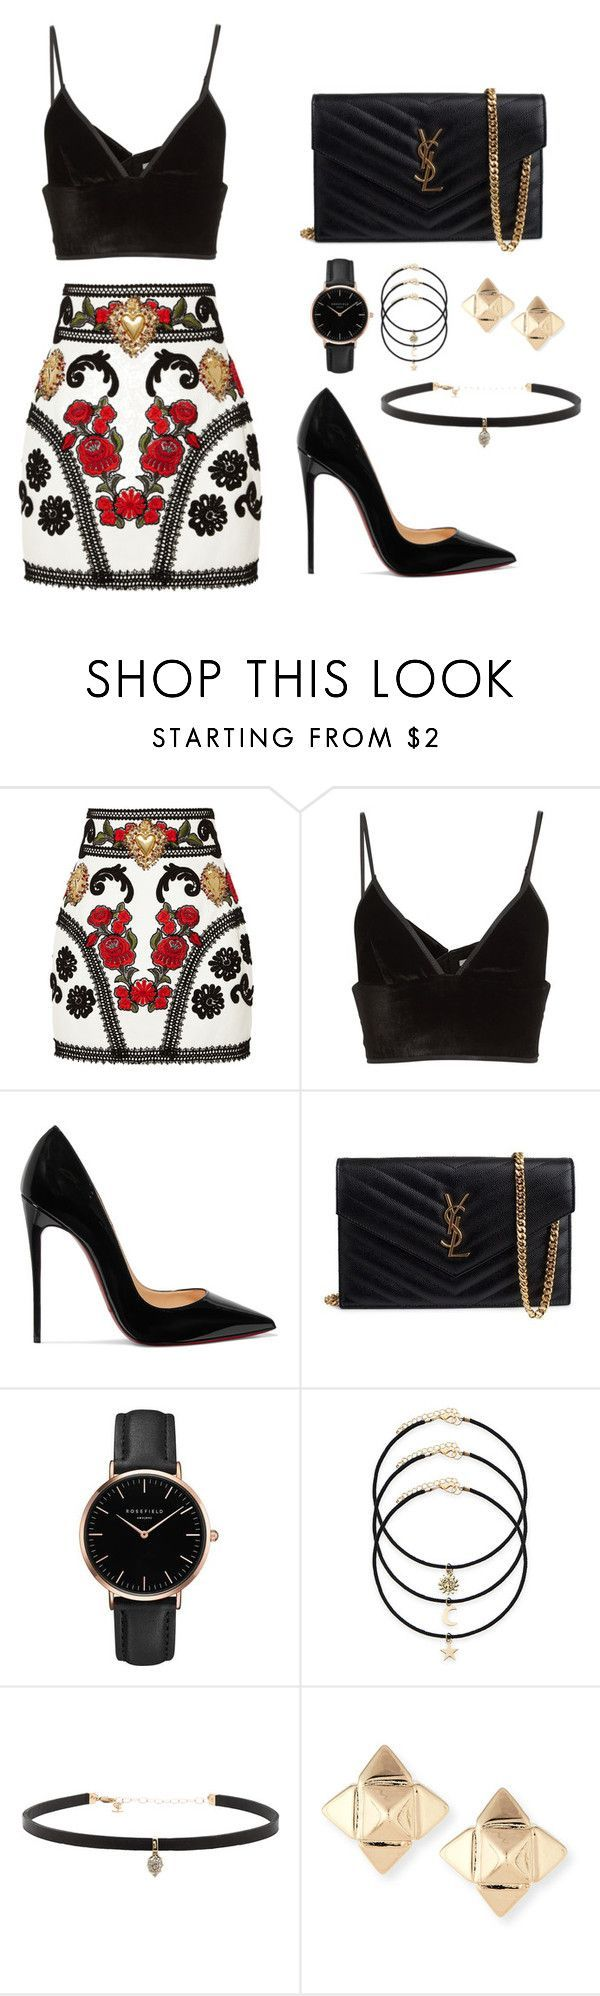 """Untitled #158"" by ipinkiee ❤ liked on Polyvore featuring Dolce&Gabbana, Alexander Wang, Christian Louboutin, Yves Saint Laurent, Topshop, Carbon & Hyde and Valentino"